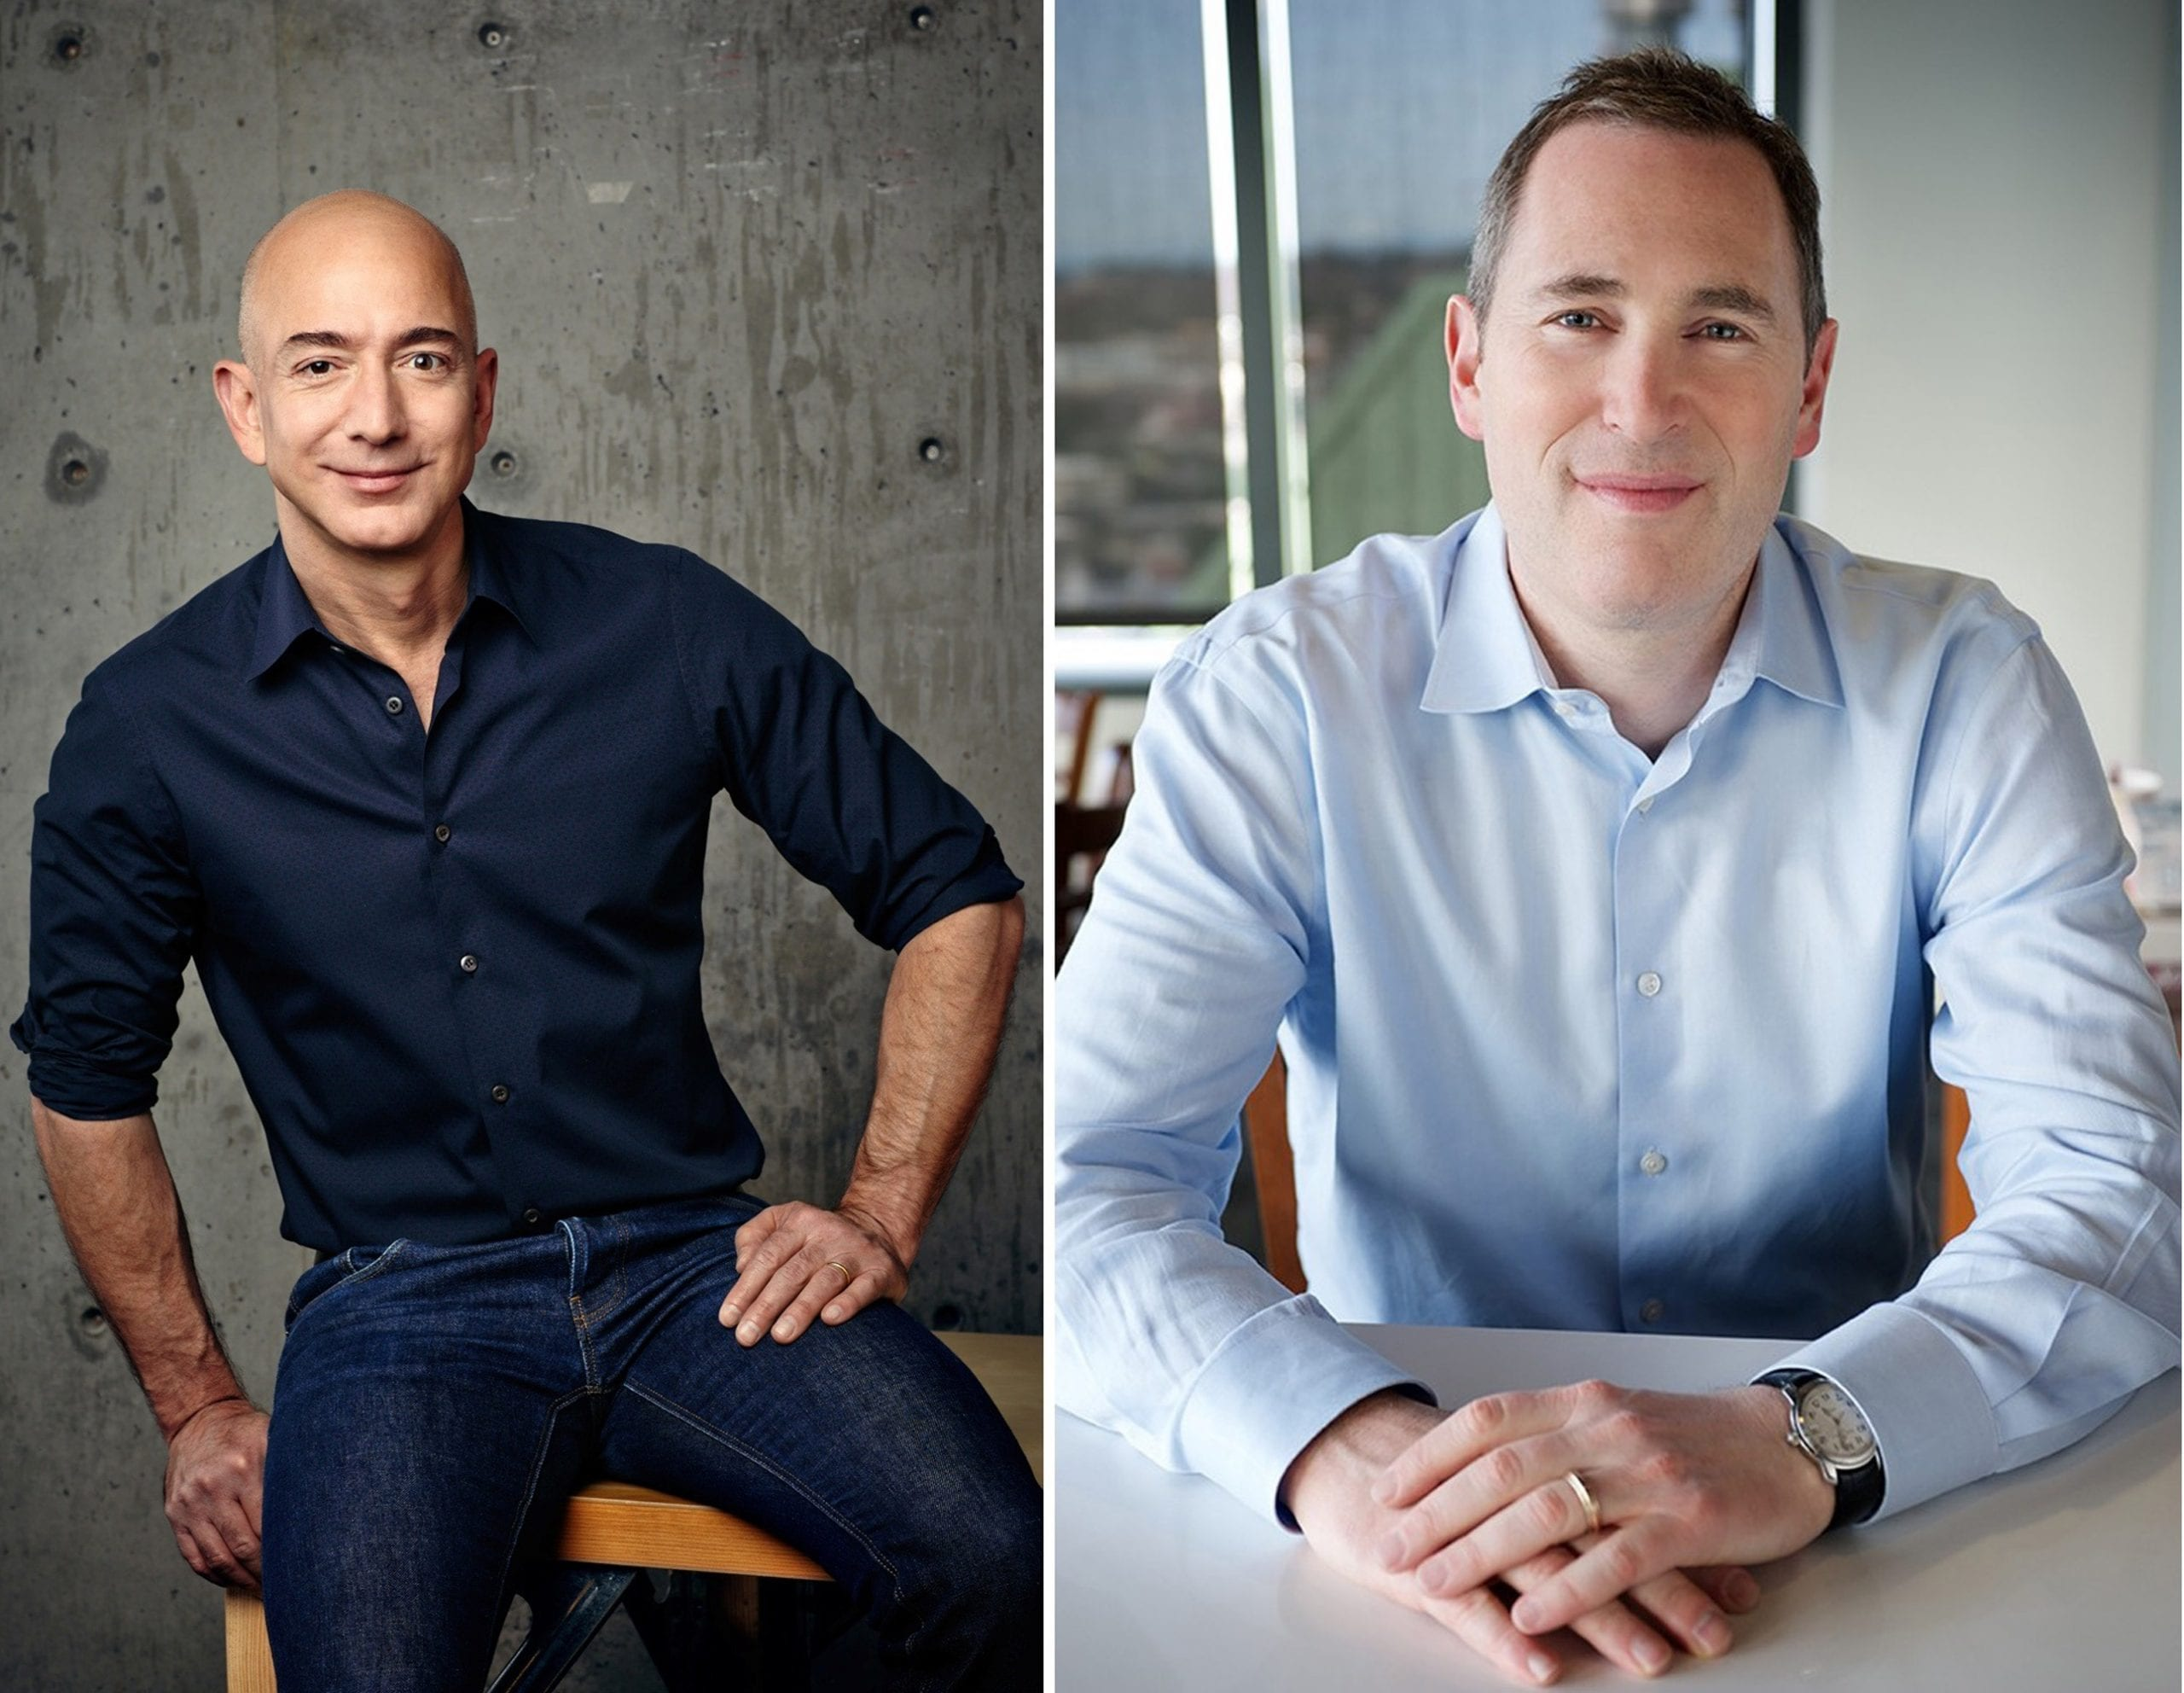 The End of an Era? Jeff Bezos to Step Down as CEO